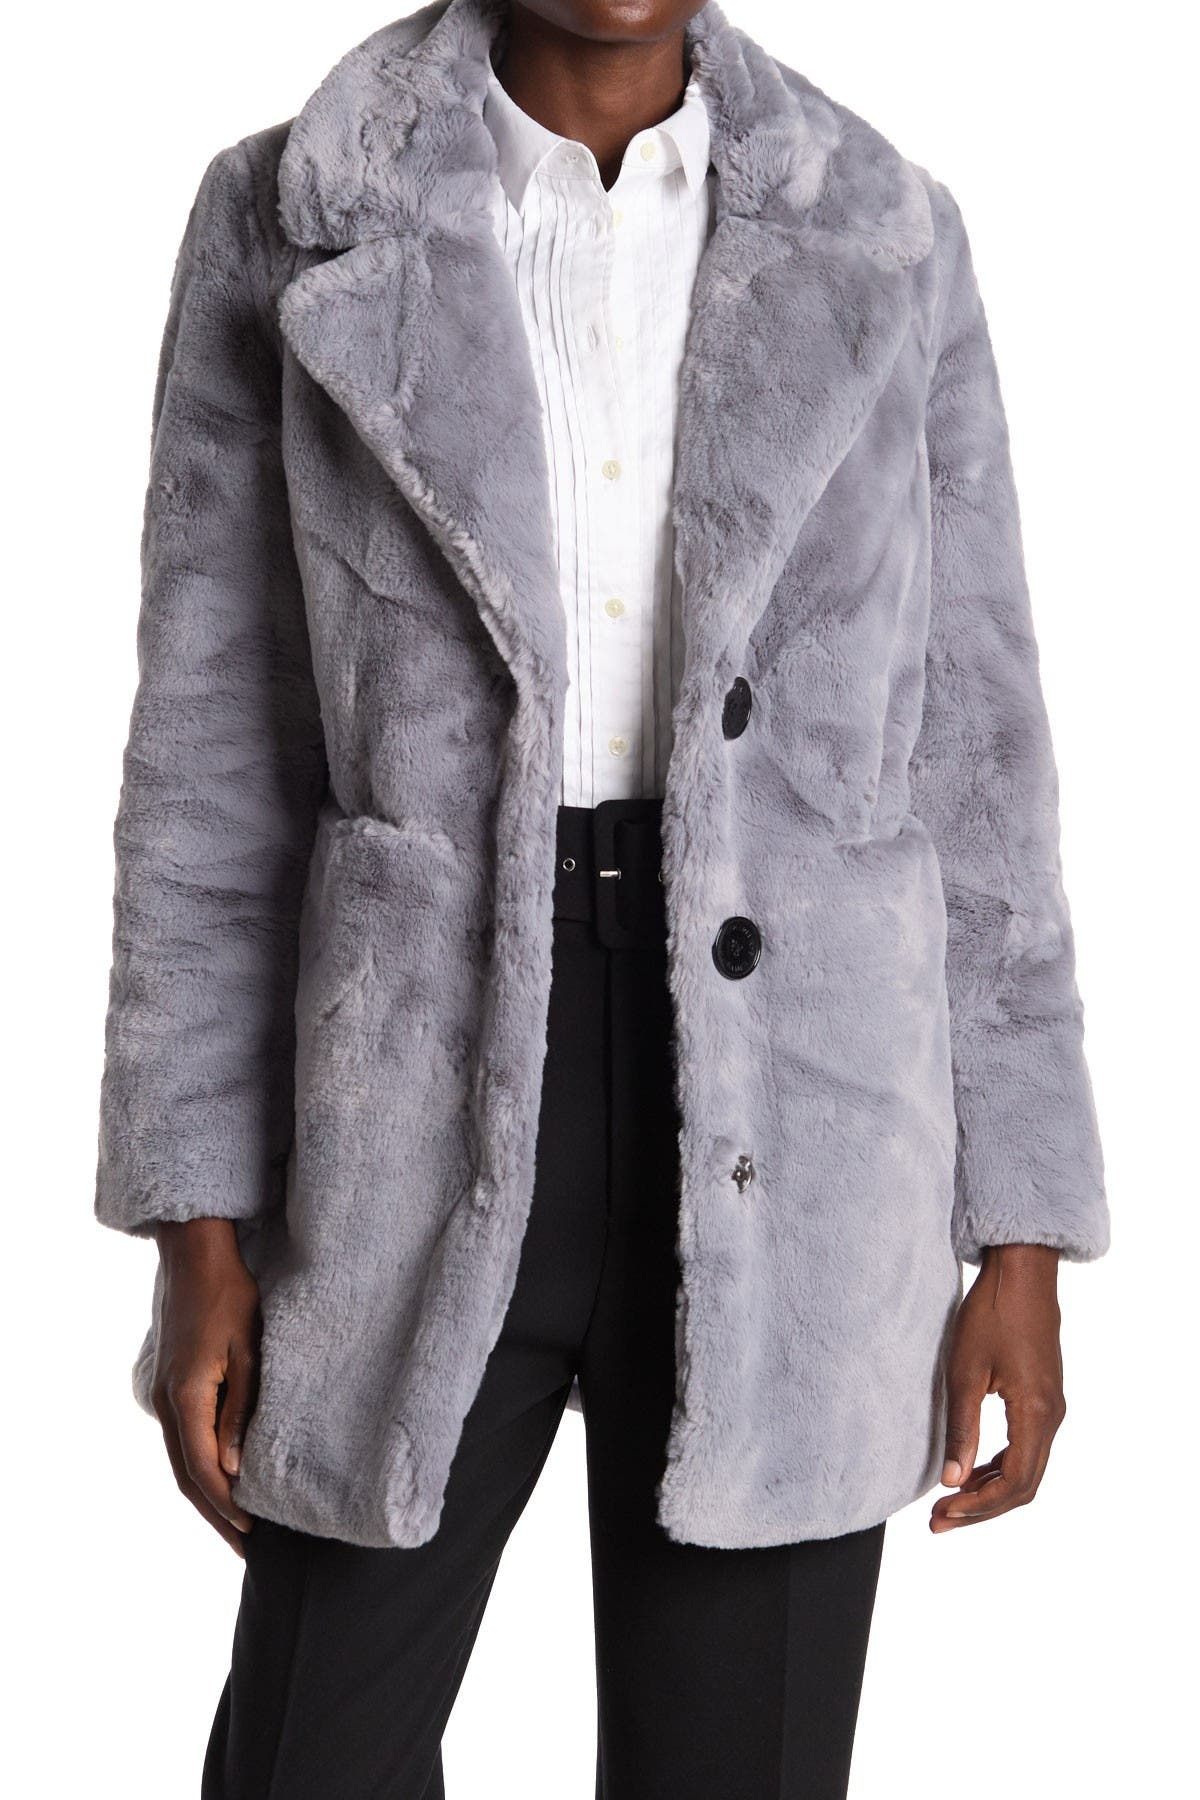 Image of Sam Edelman Faux Fur Coat